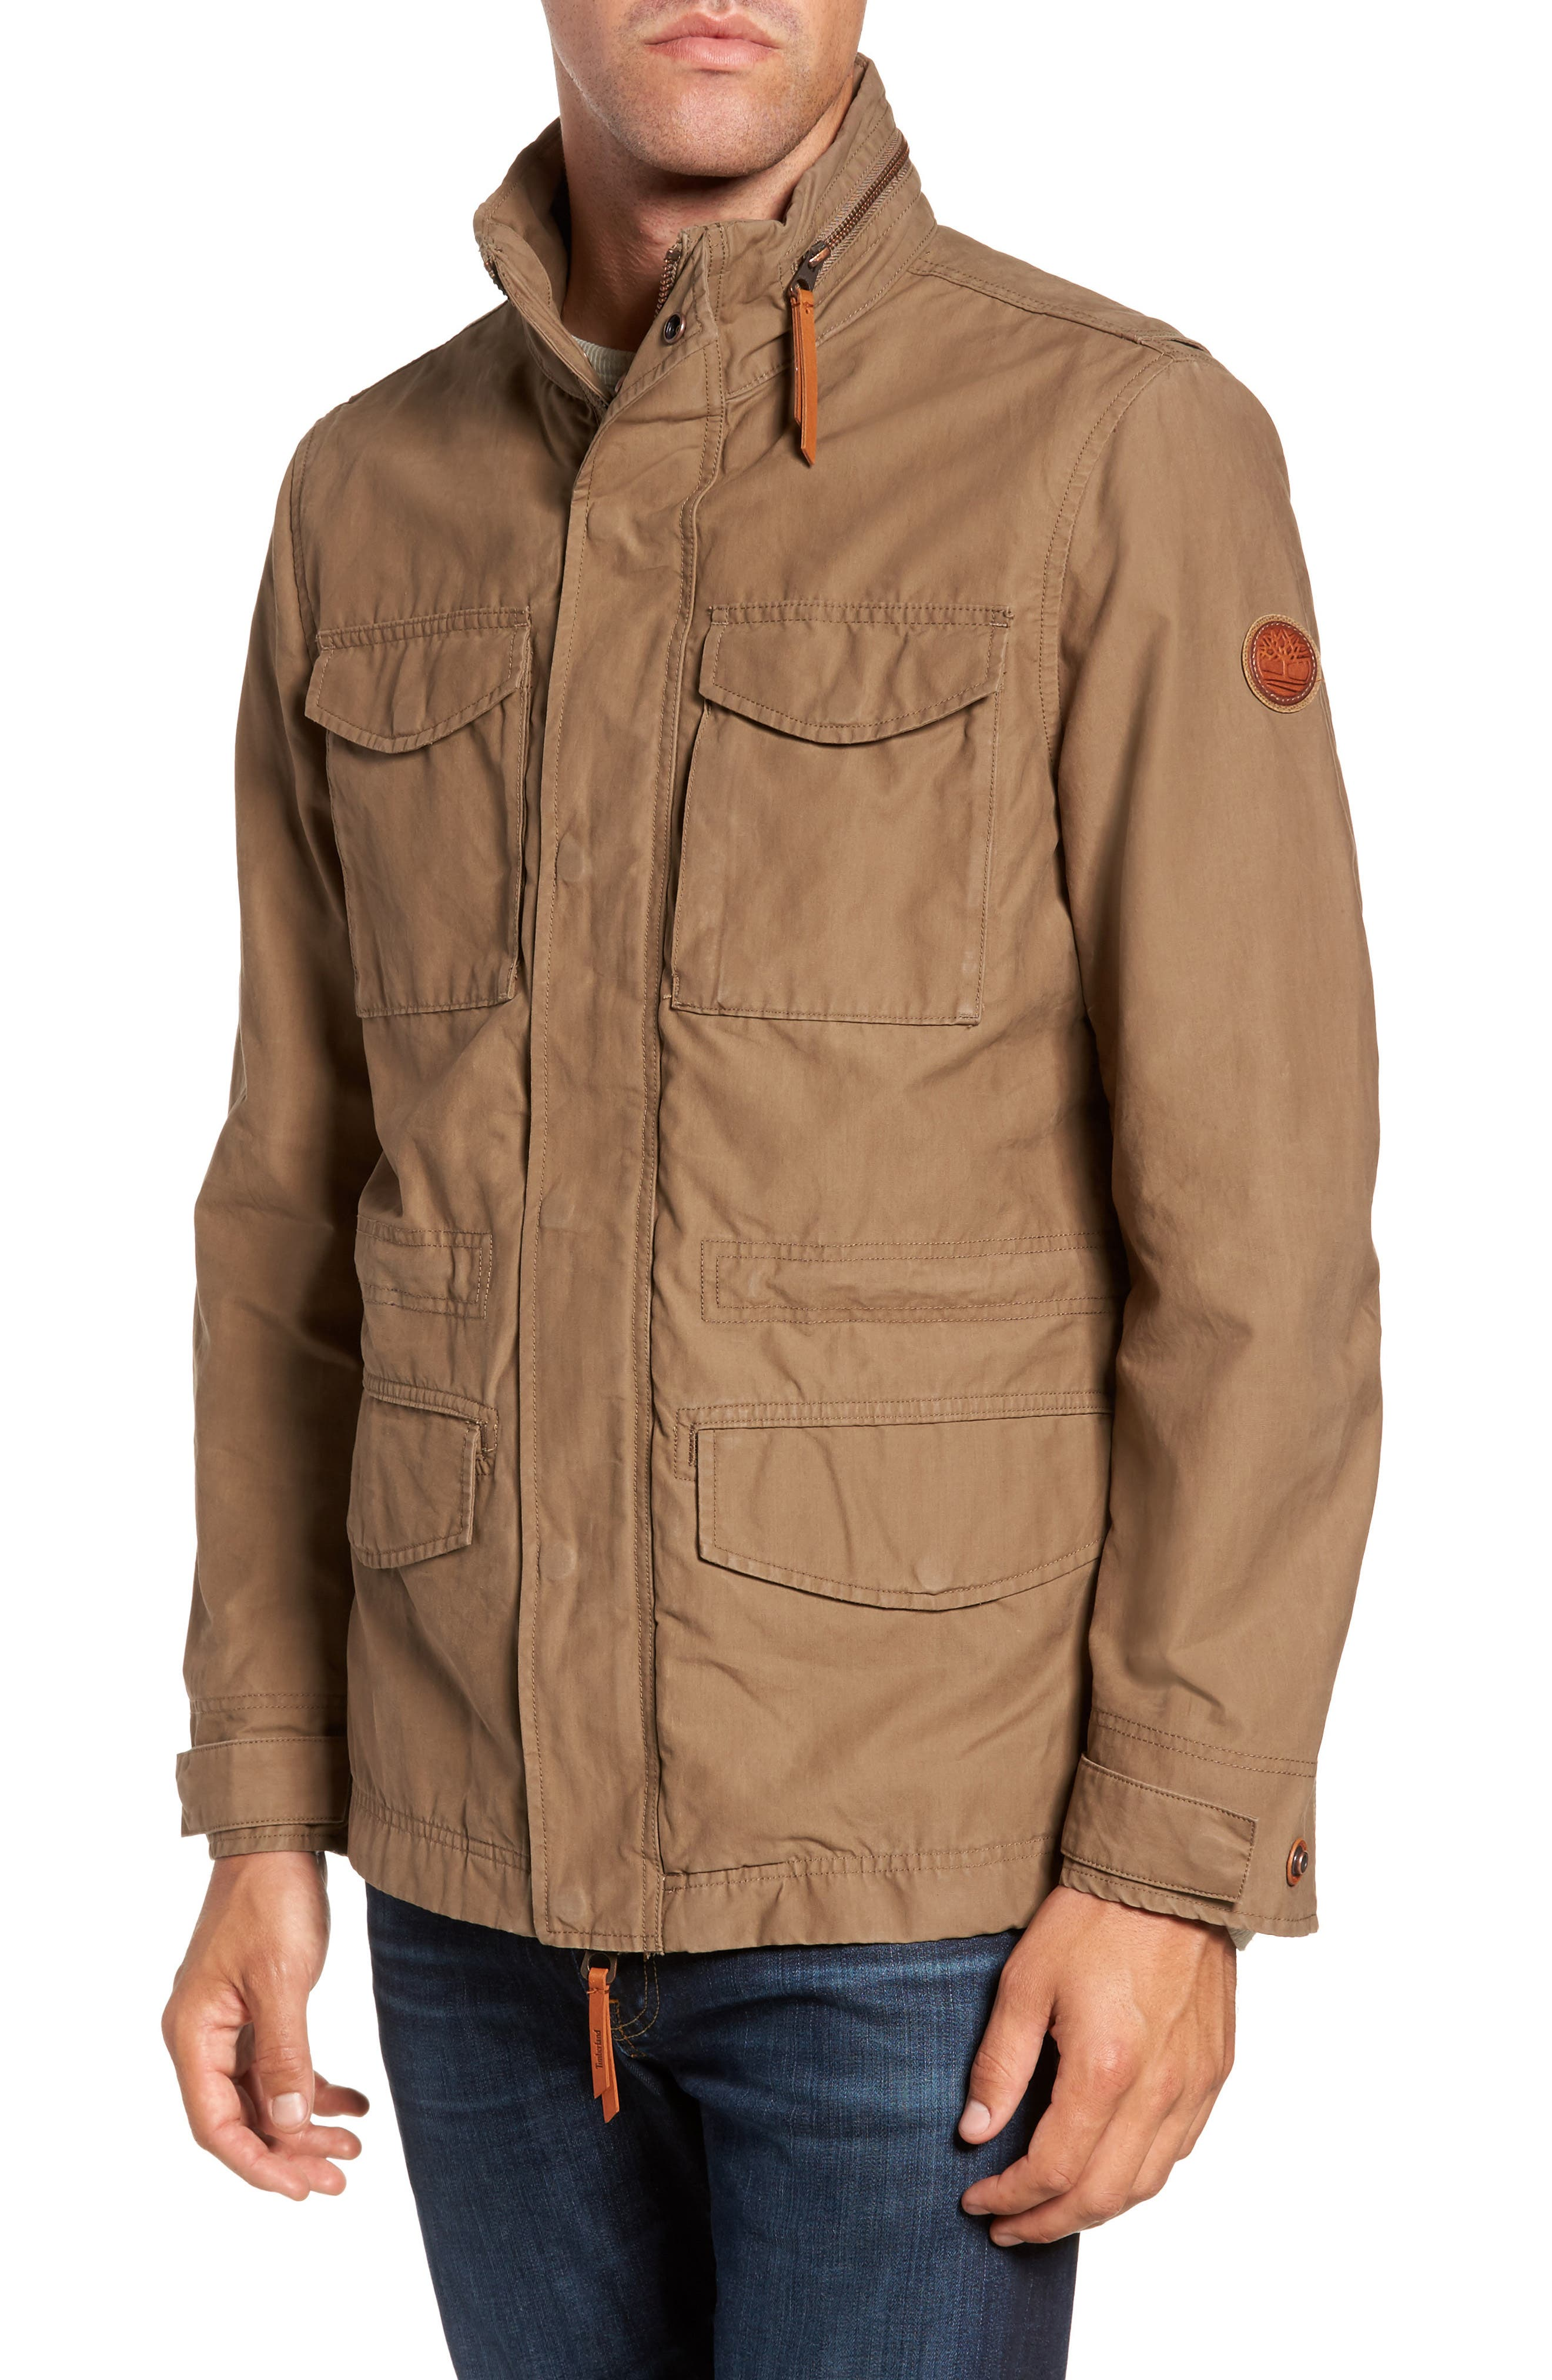 Alternate Image 1 Selected - Timberland Mt. Davis M65 Waxed Canvas Jacket